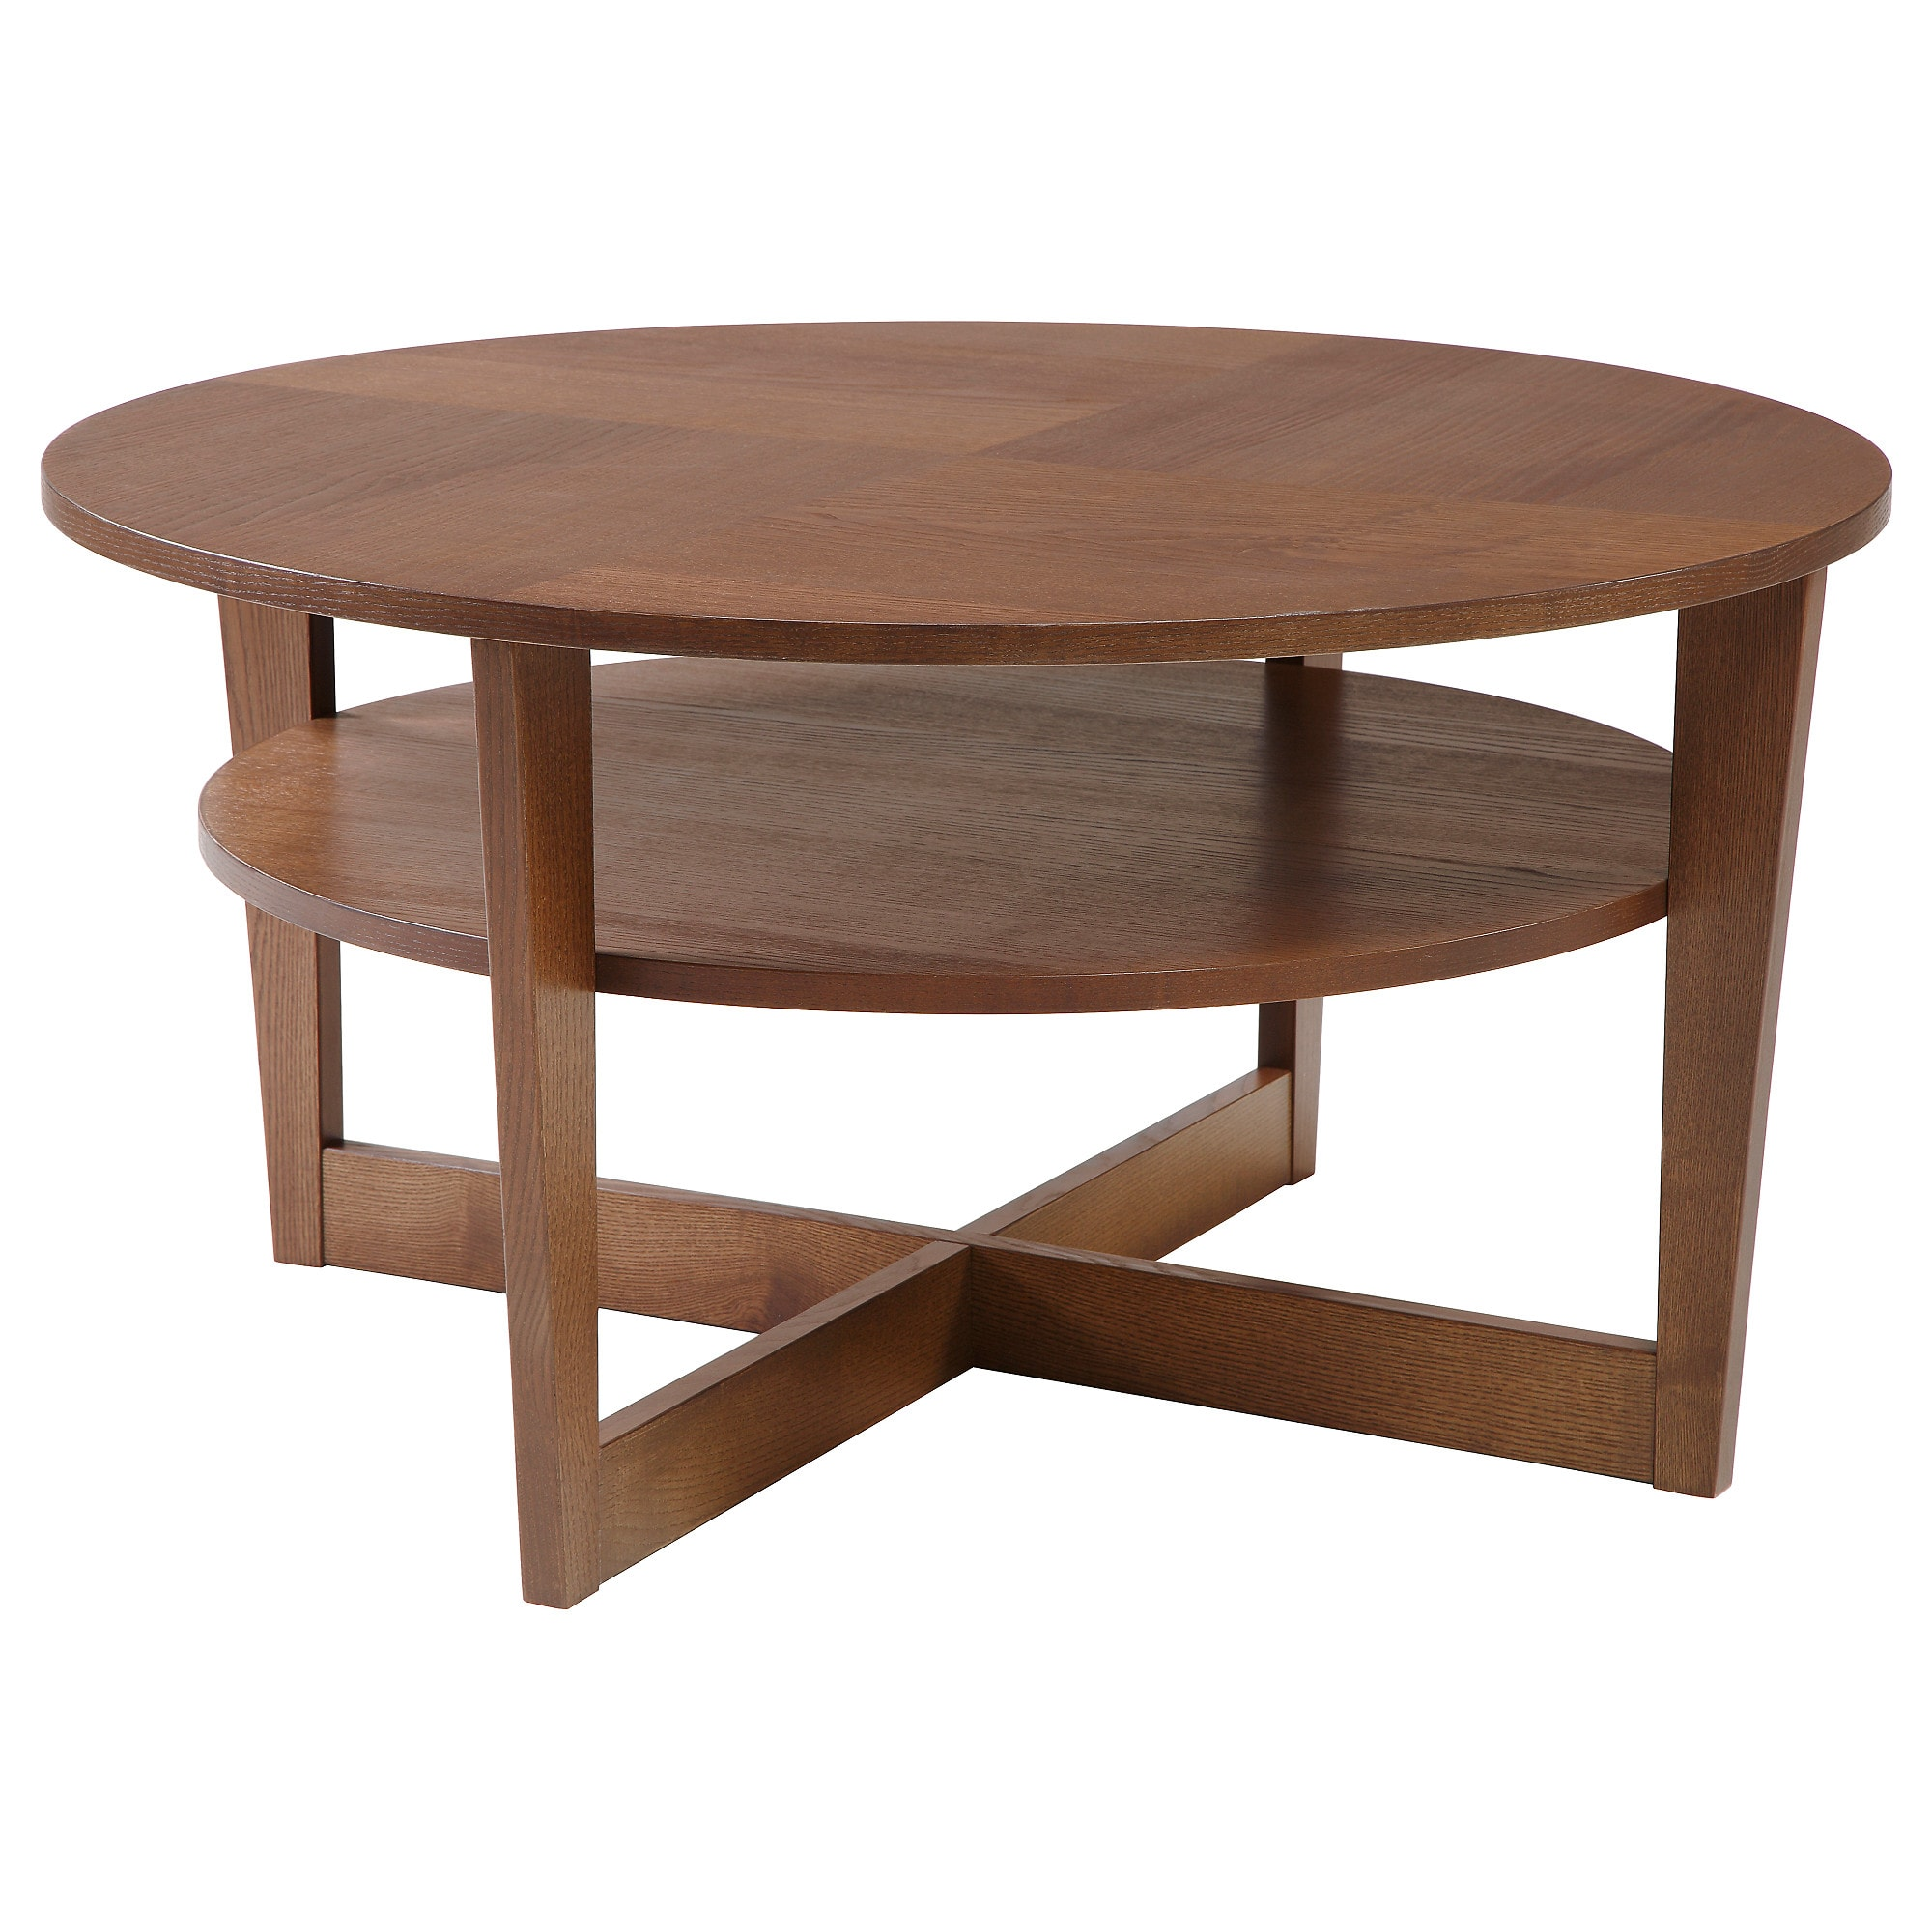 Wooden Round Coffee Table with Storage Open Shelf